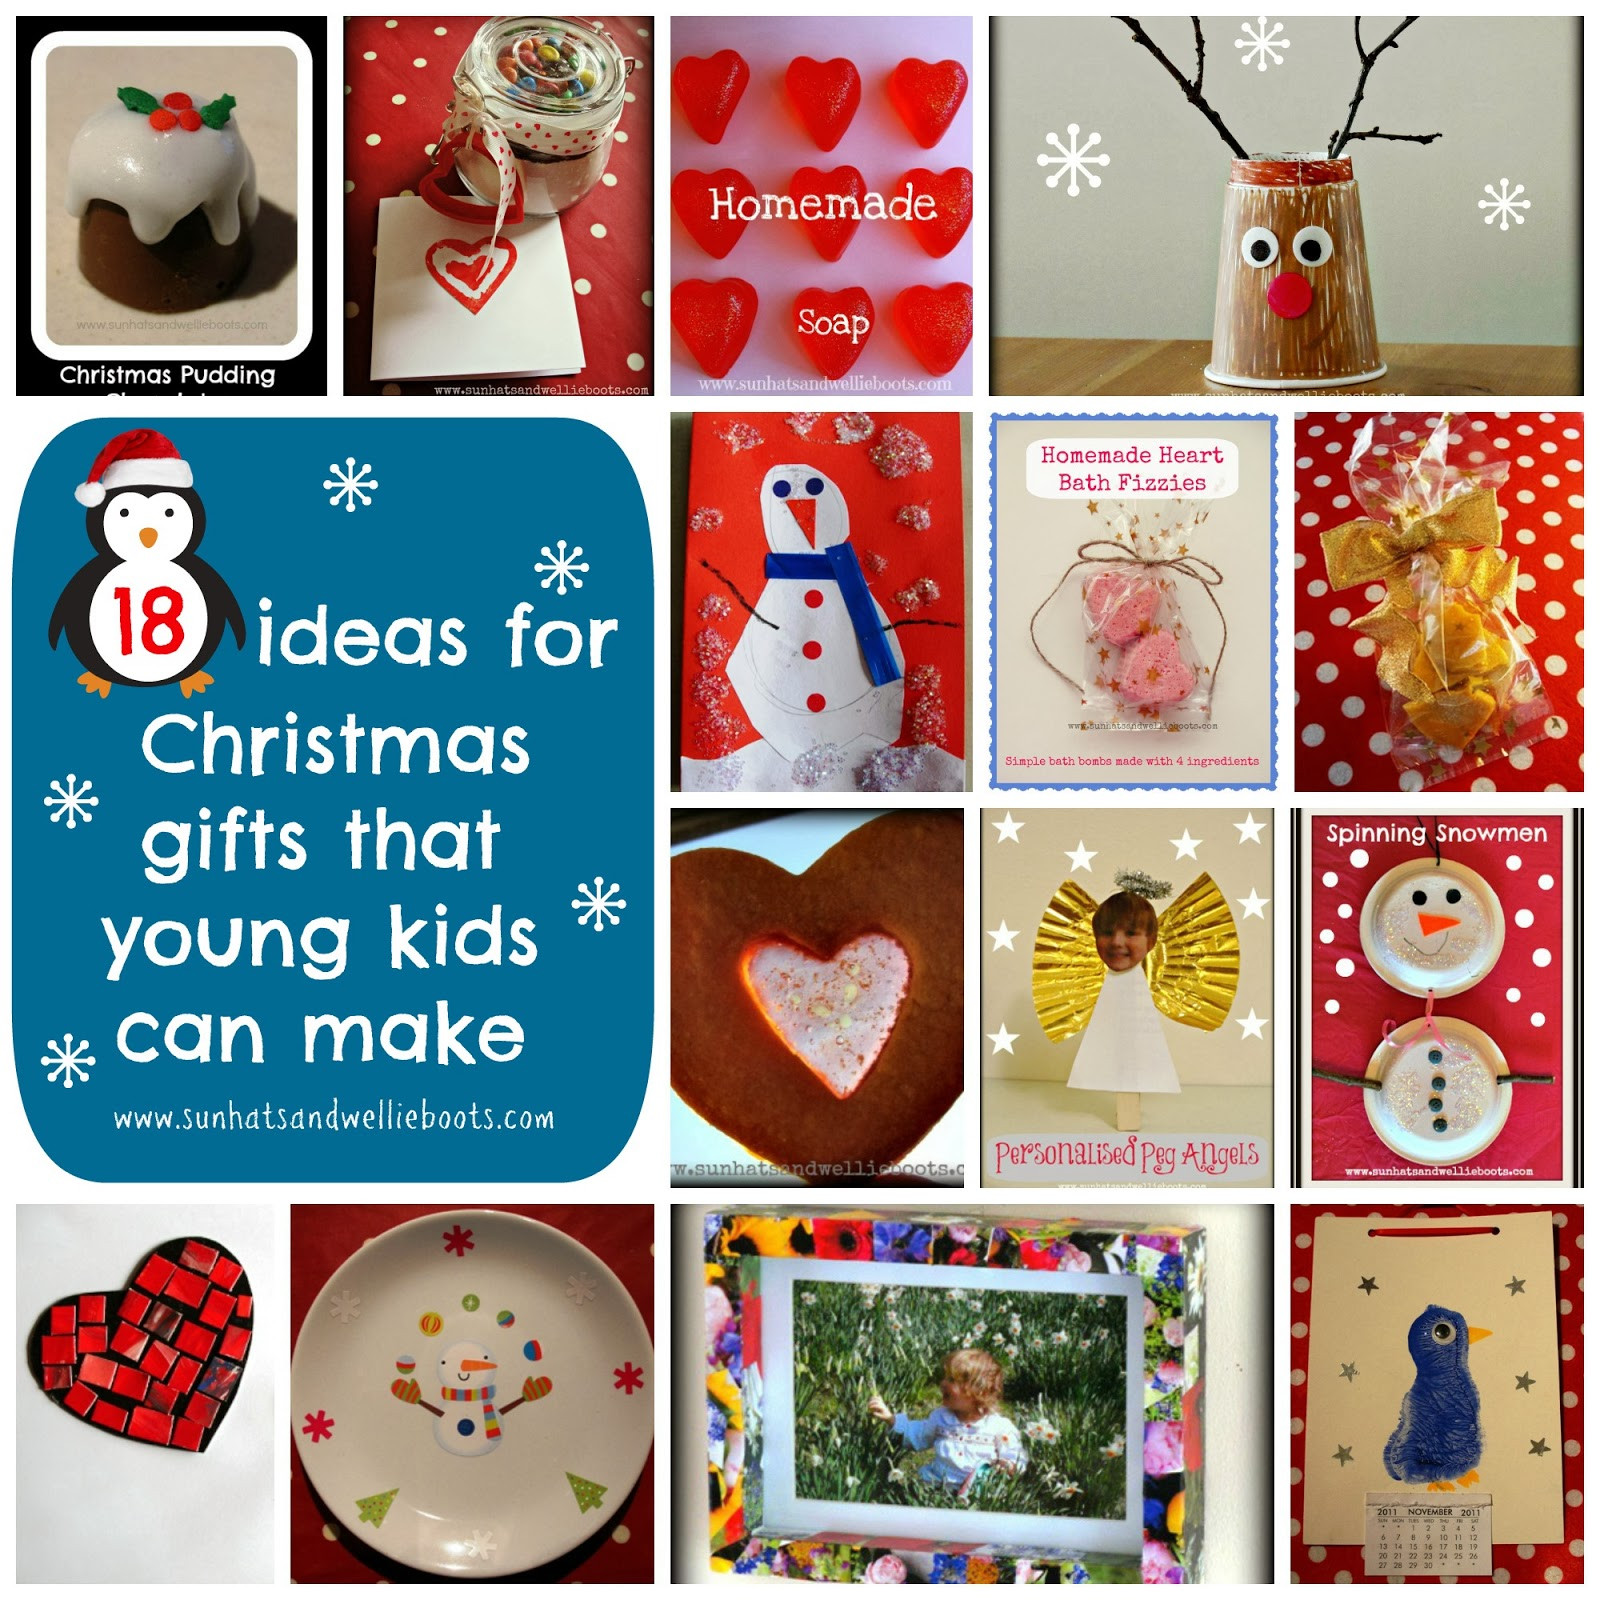 DIY Gifts For Kids To Make  Sun Hats & Wellie Boots 18 Homemade Christmas Gifts That